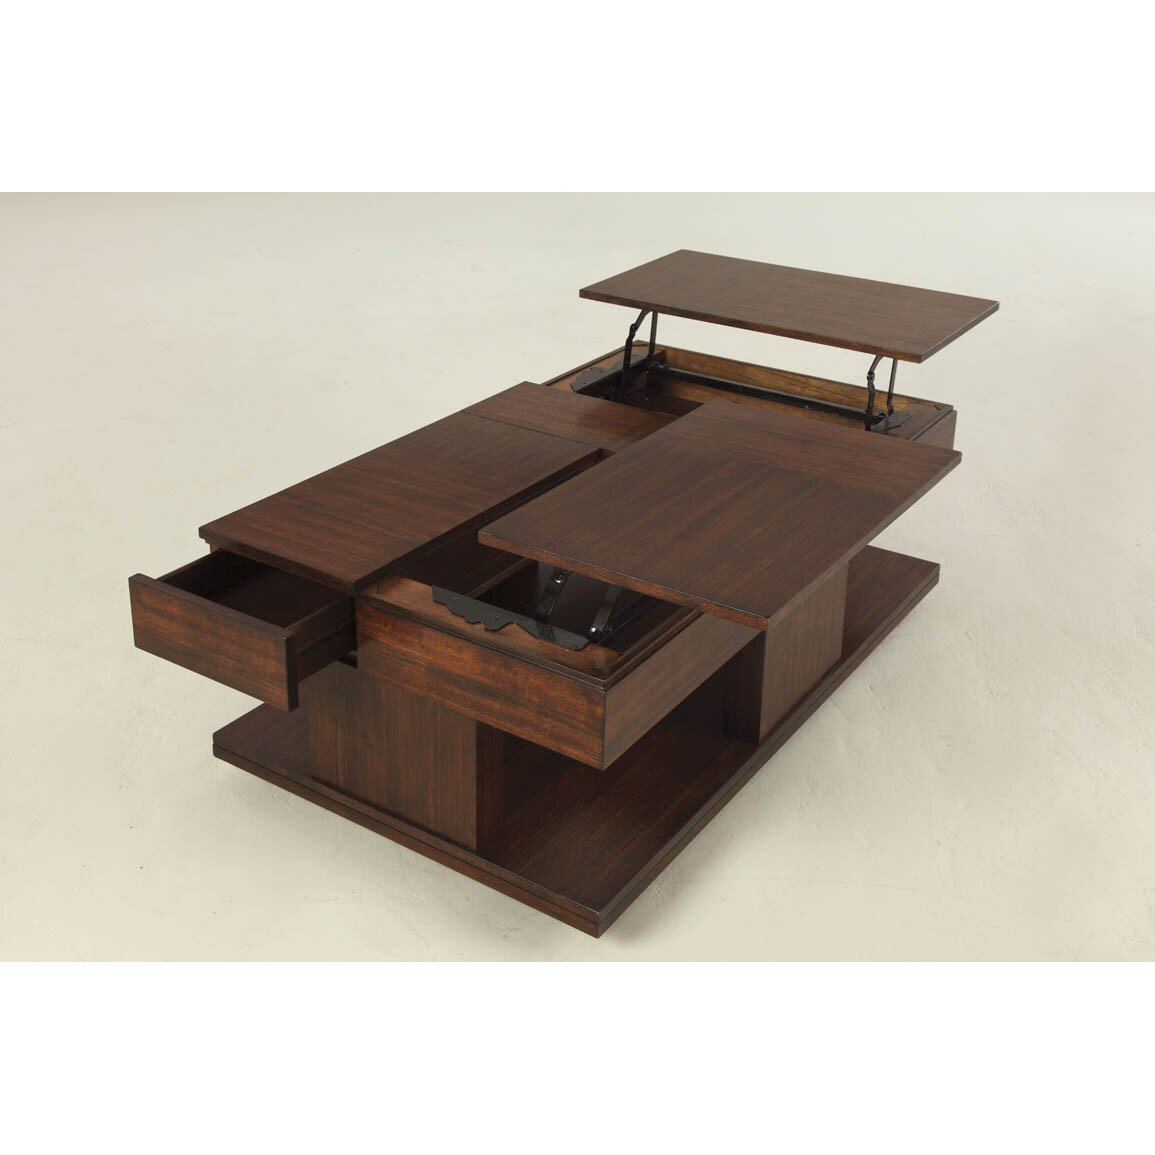 Lift Table Coffee Table: Darby Home Co Dail Coffee Table With Double Lift-Top